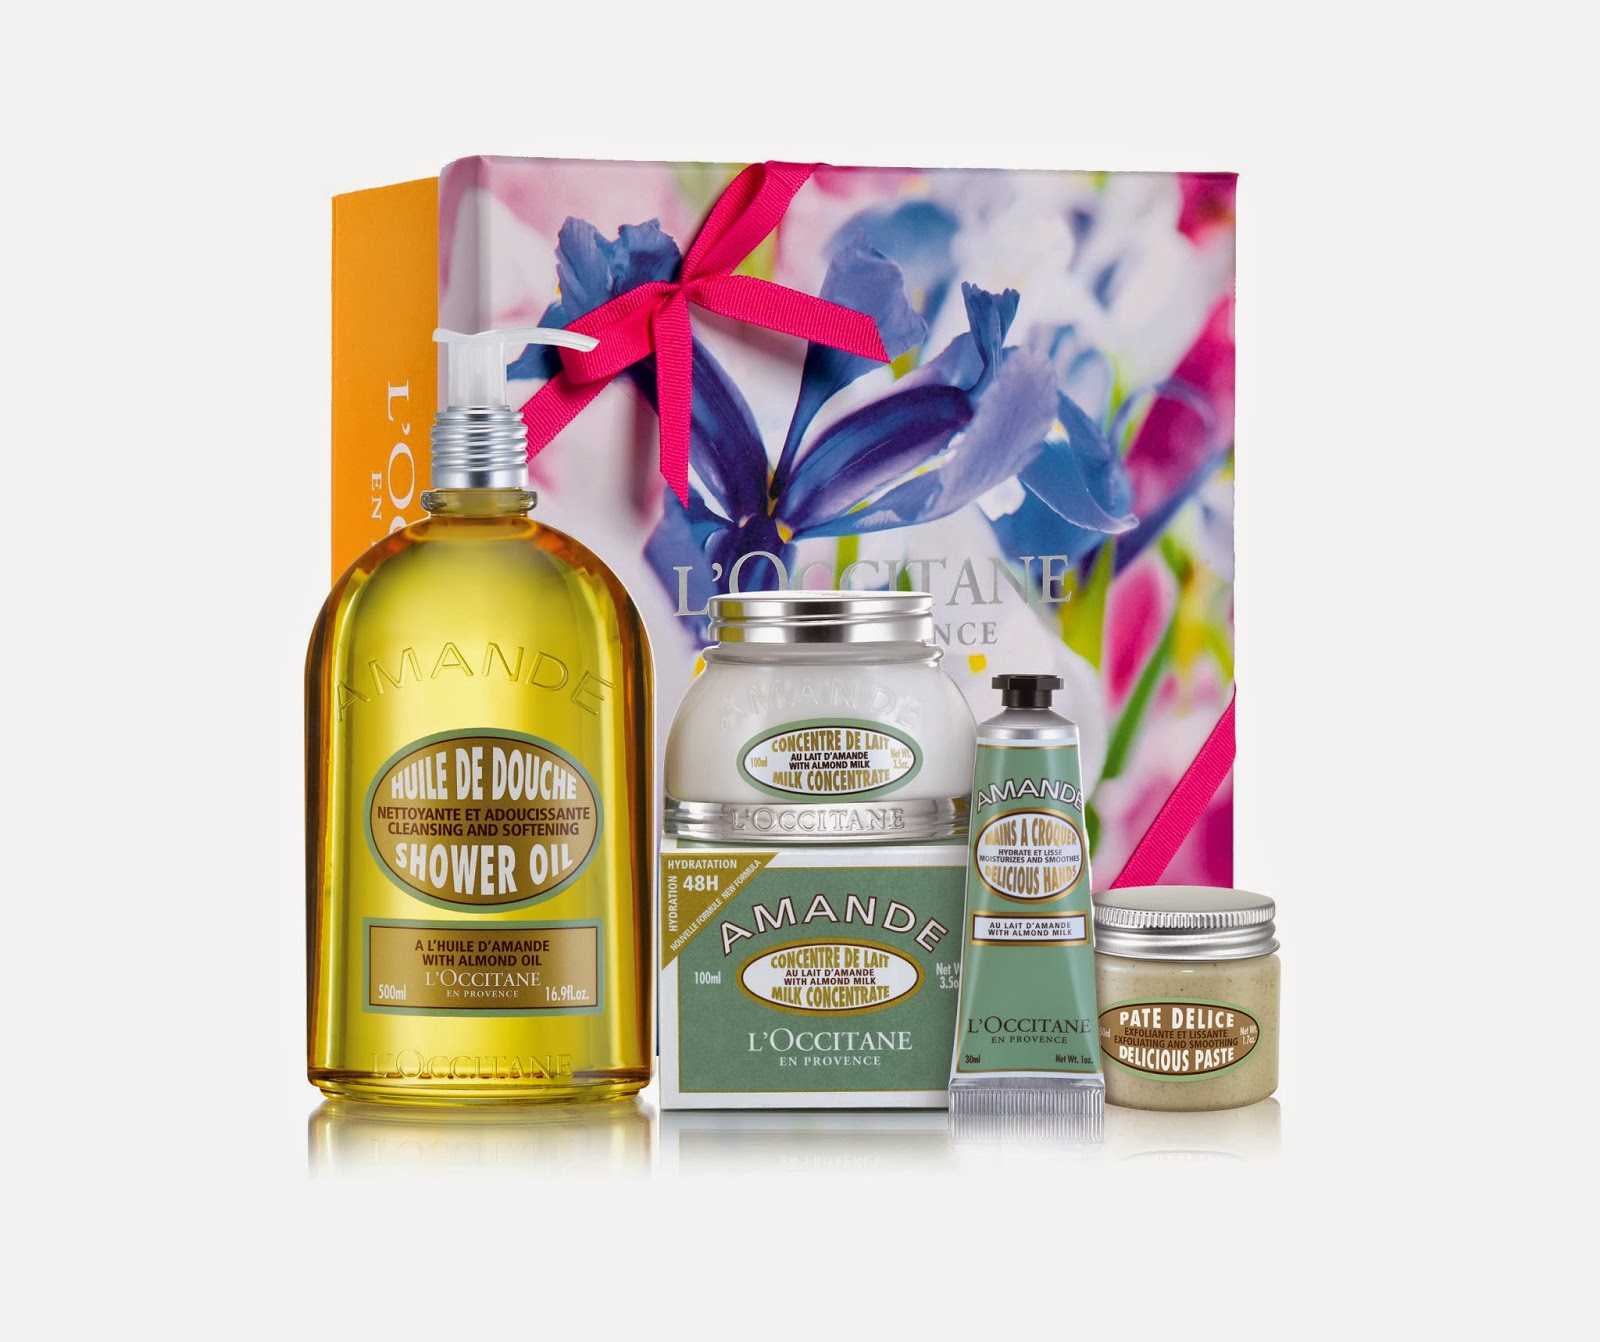 GIVE MOM THE GIFT OF PROVENÇAL LOVE WITH GIFT SETS FROM L'OCCITANE ...